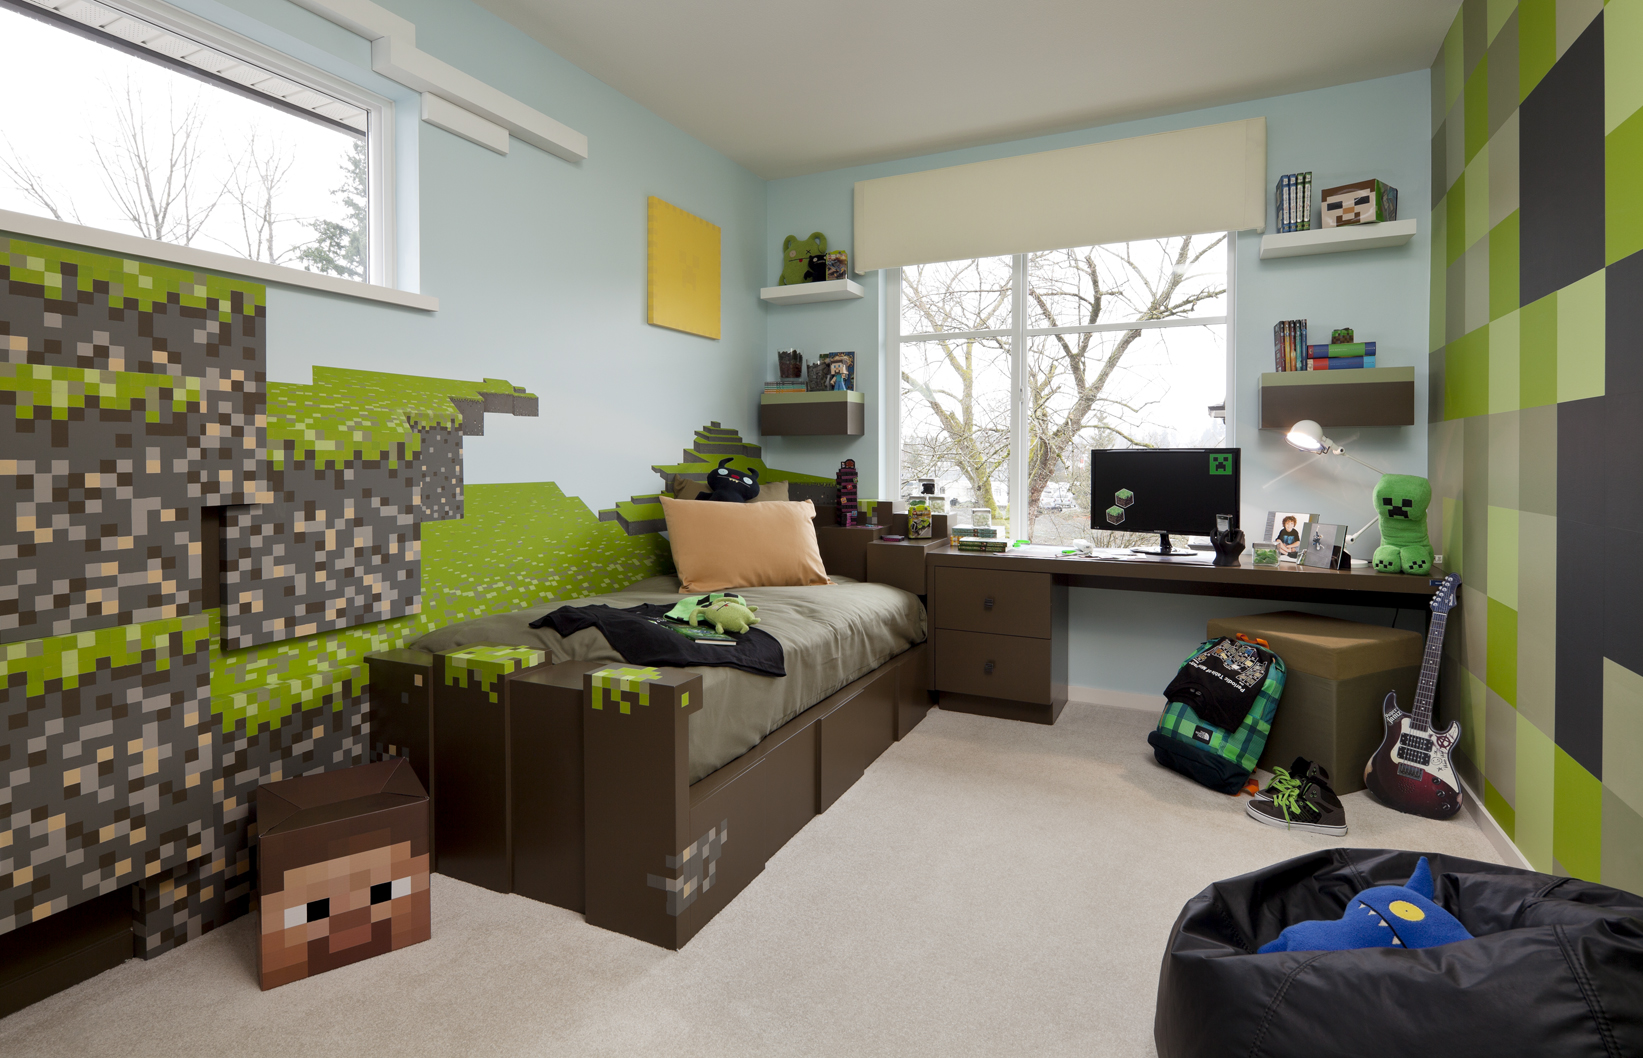 Minecraft bedroom ideas in real life house made of paper for Boys room mural